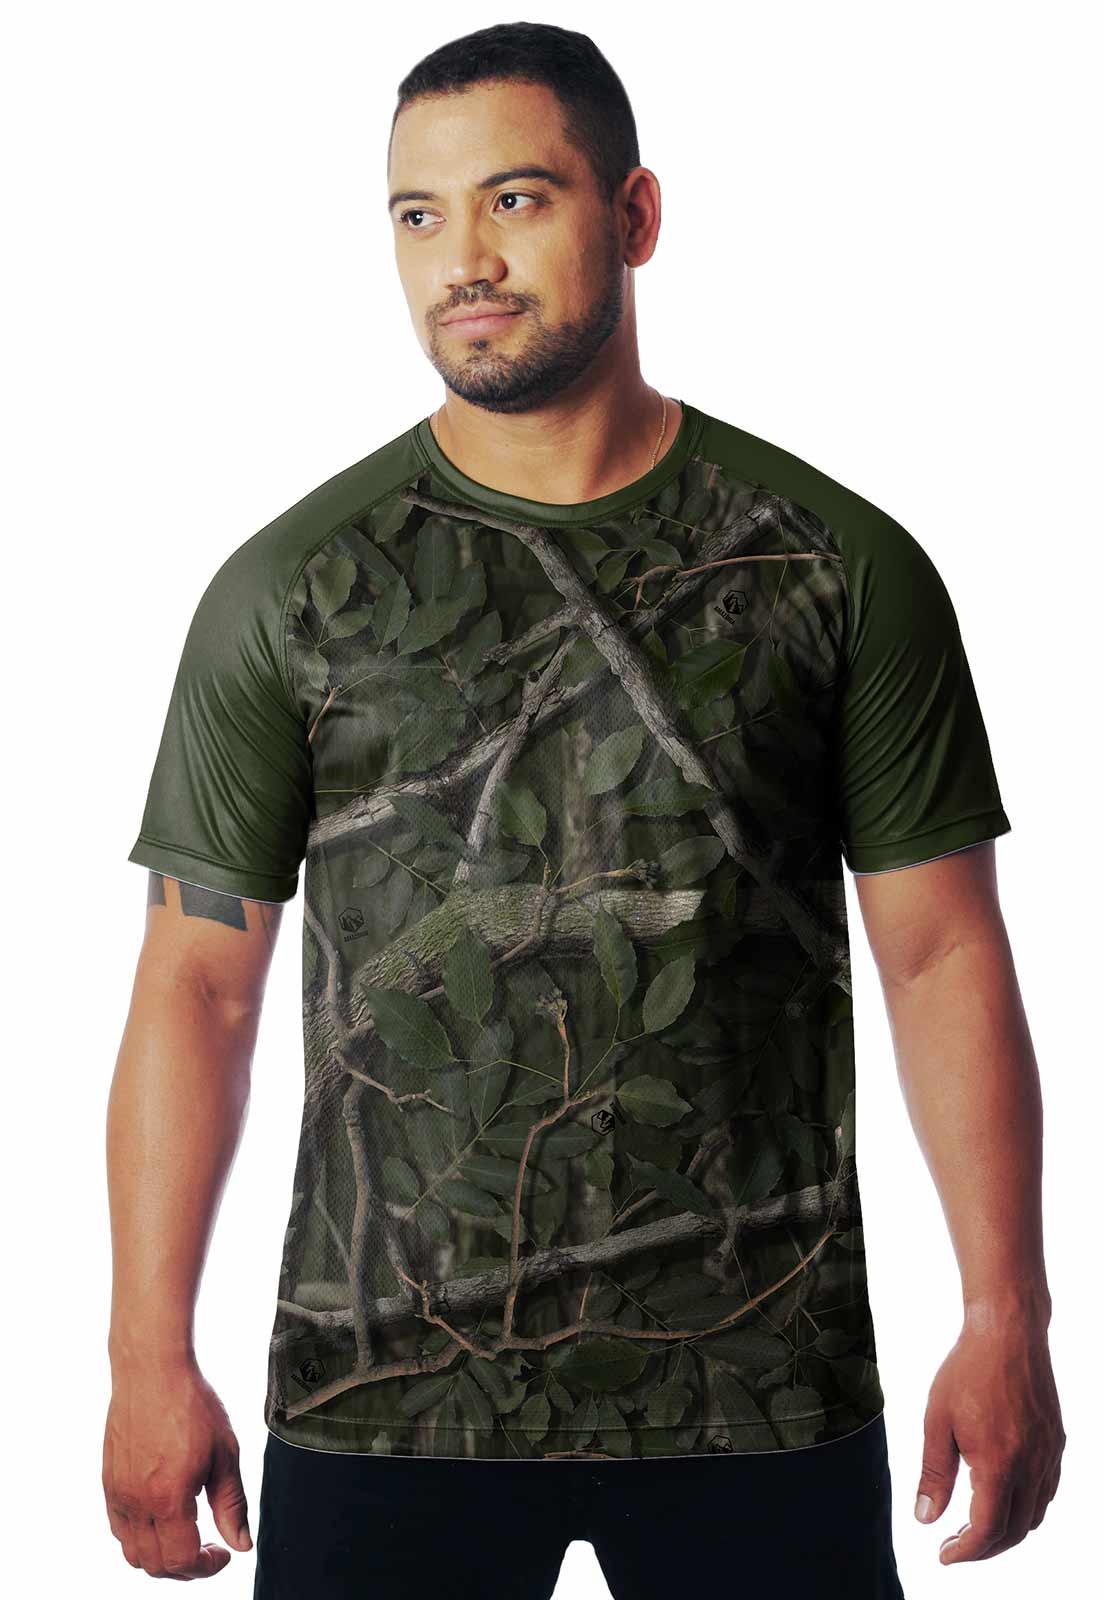 CAMISETA CAMUFLADA AMAZÔNIA DIA 01 MANGA CURTA MASCULINA  - REAL HUNTER OUTDOORS